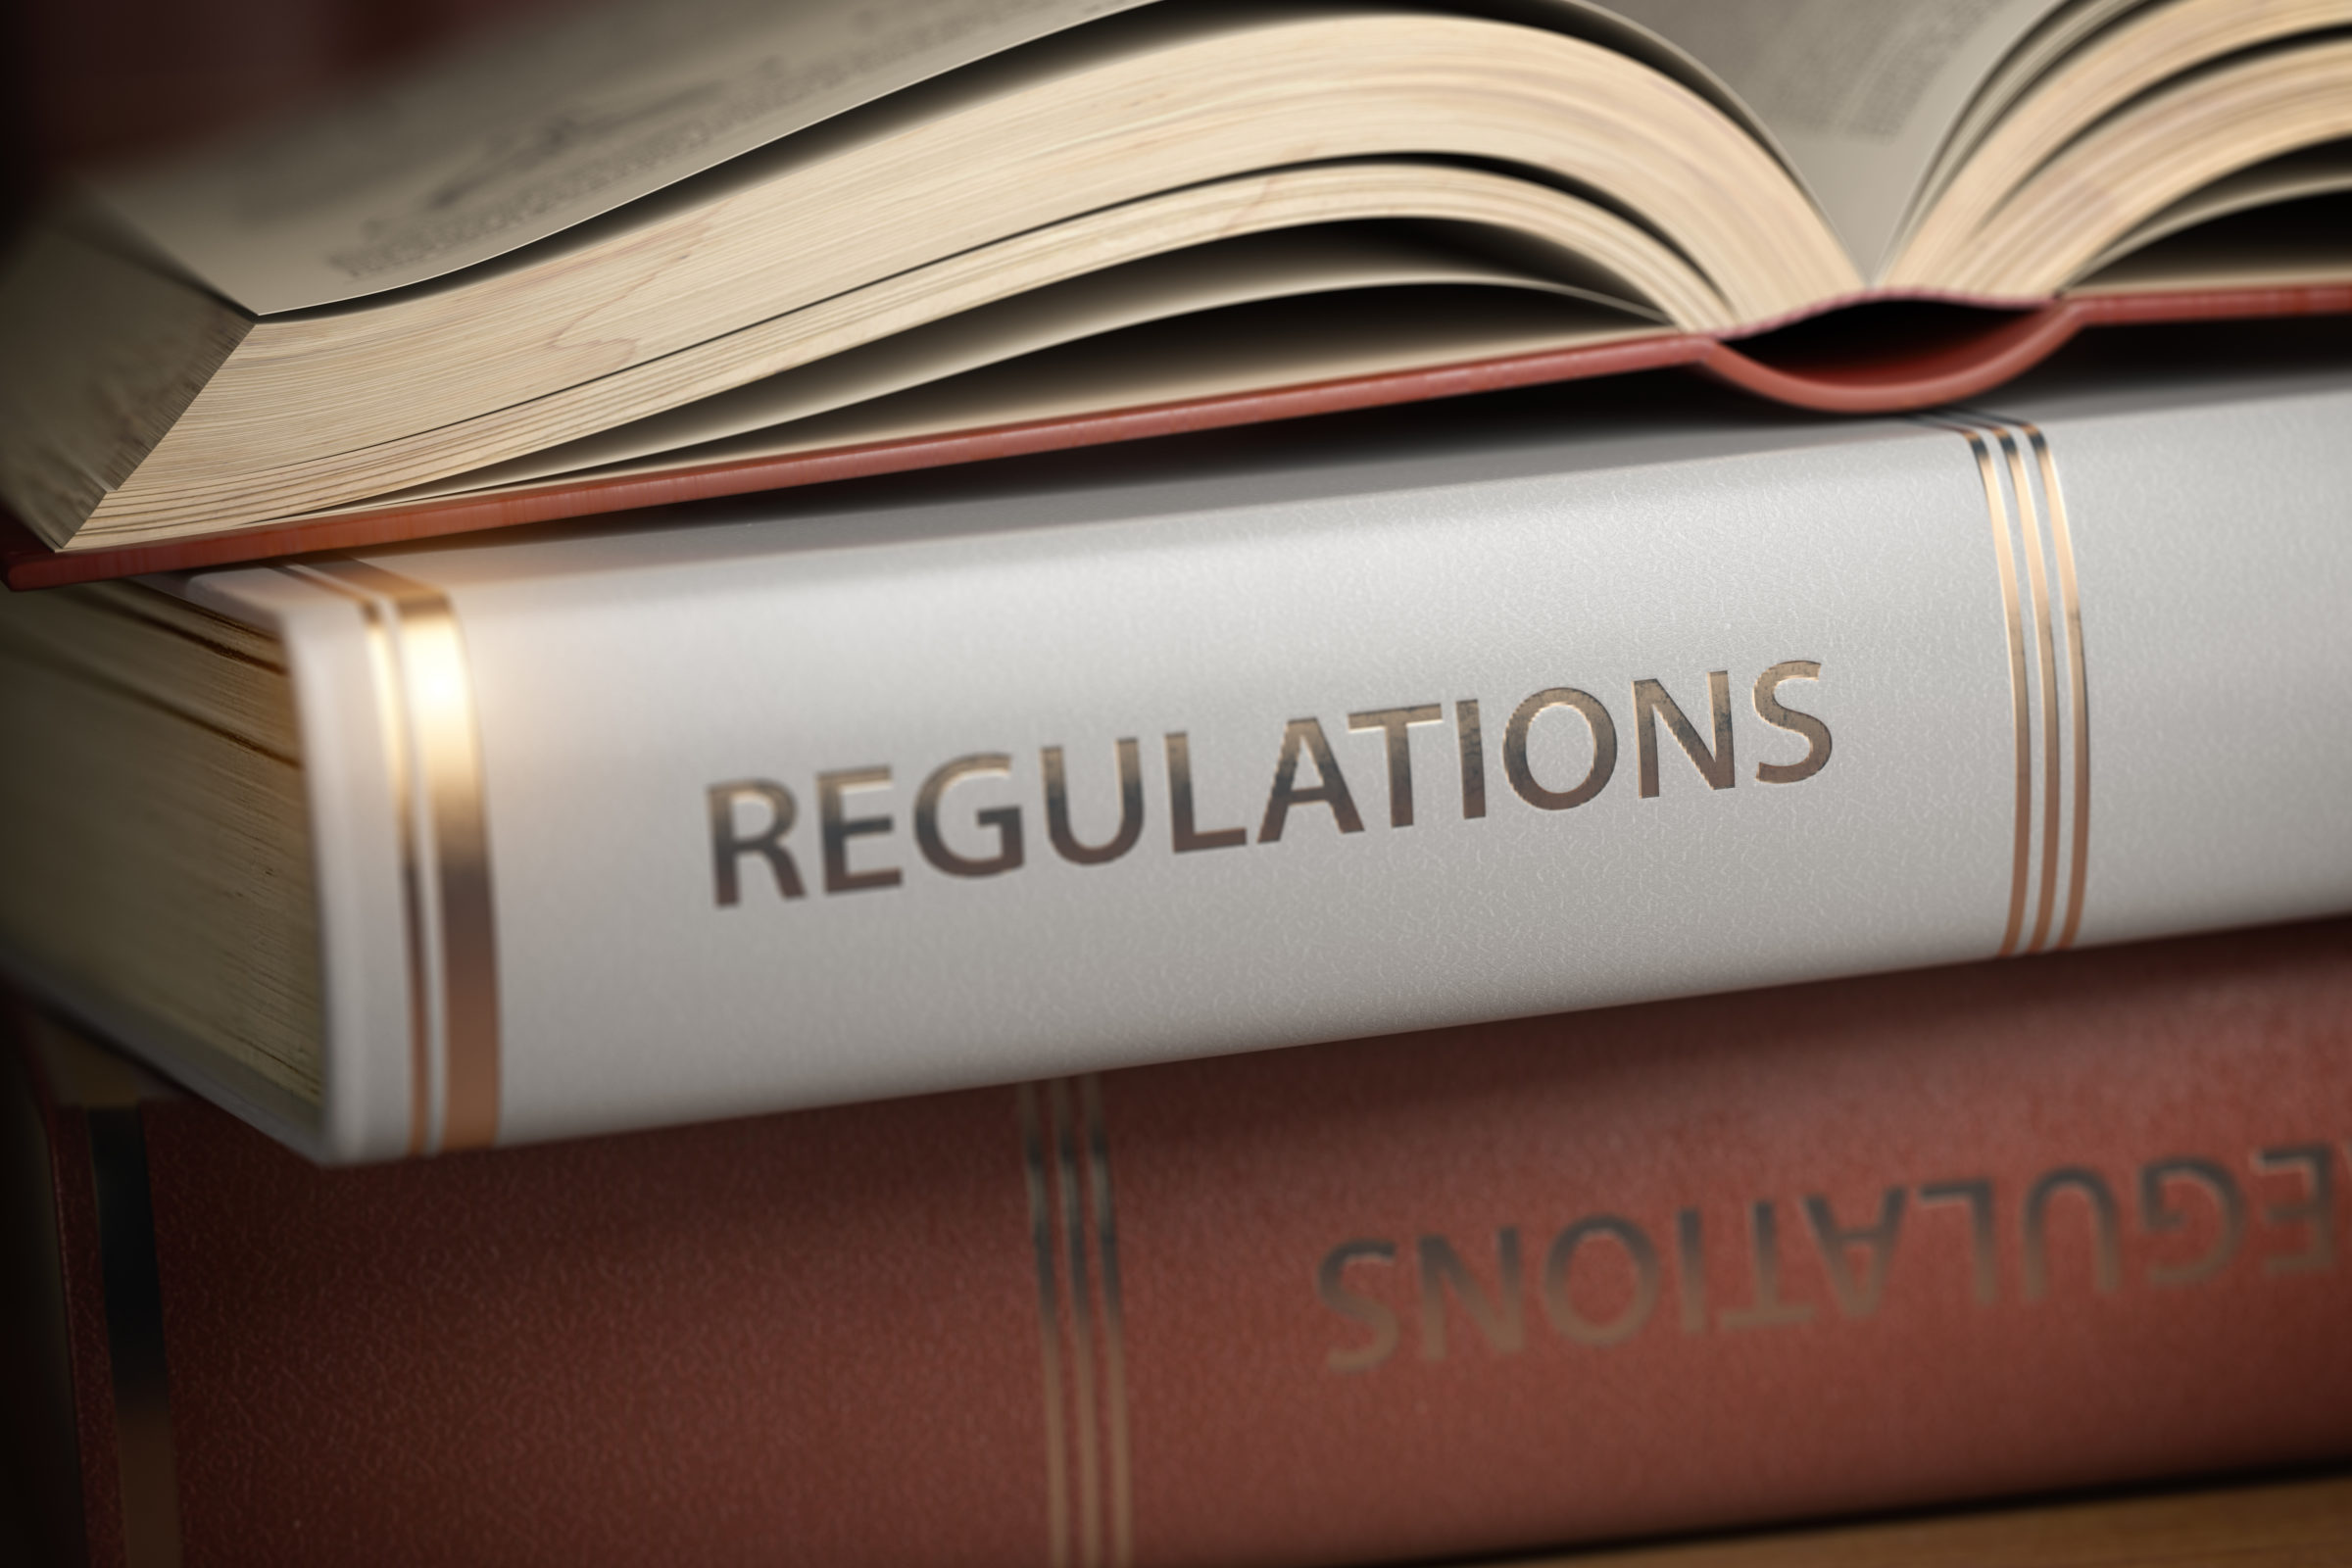 regulations book law rules and regulations concept DX9P32Z